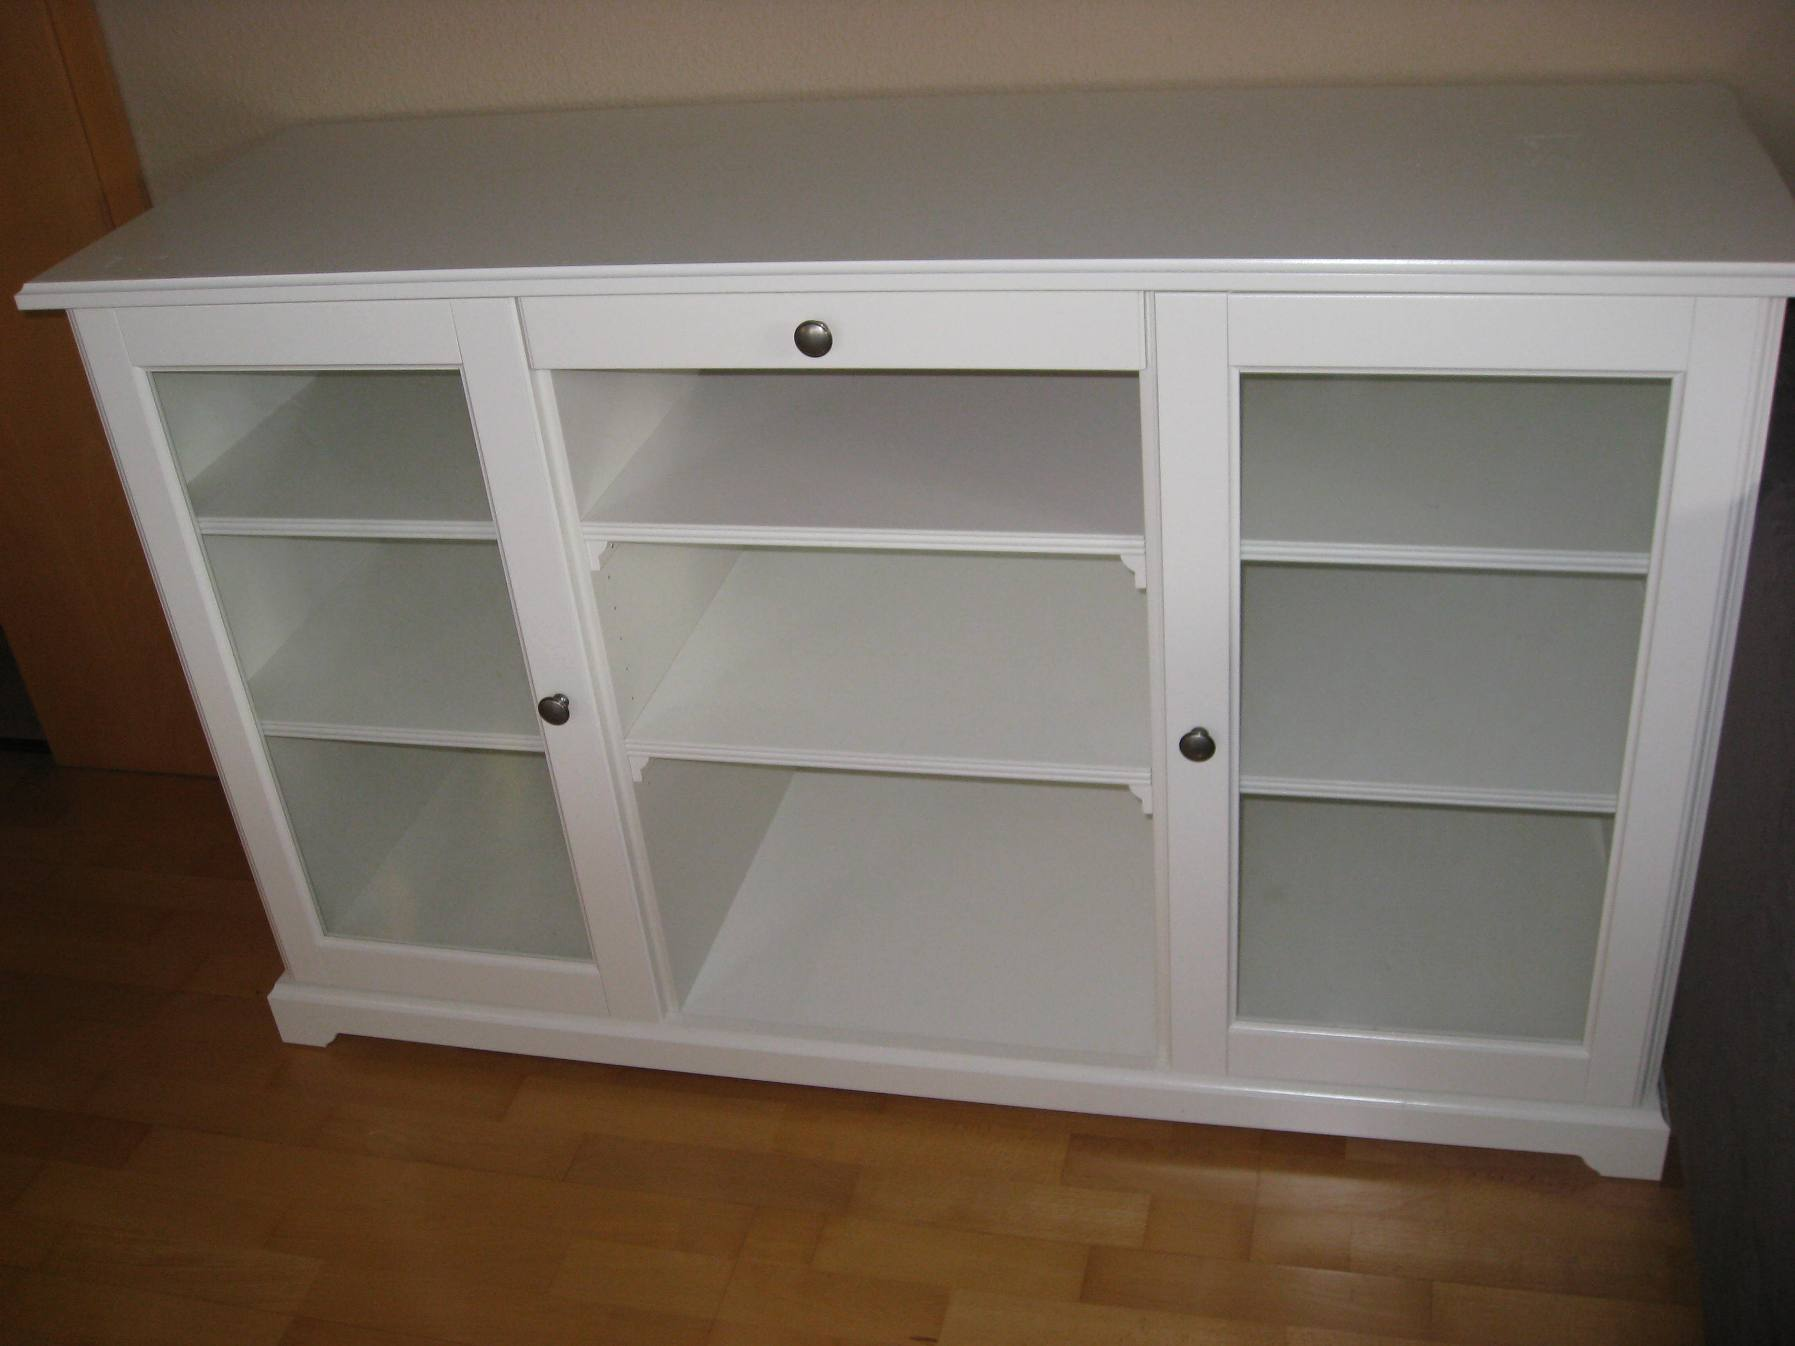 modernes ikea liatorp sideboard tv schrank 87x48x145 cm medienschrank glas weiss ebay. Black Bedroom Furniture Sets. Home Design Ideas